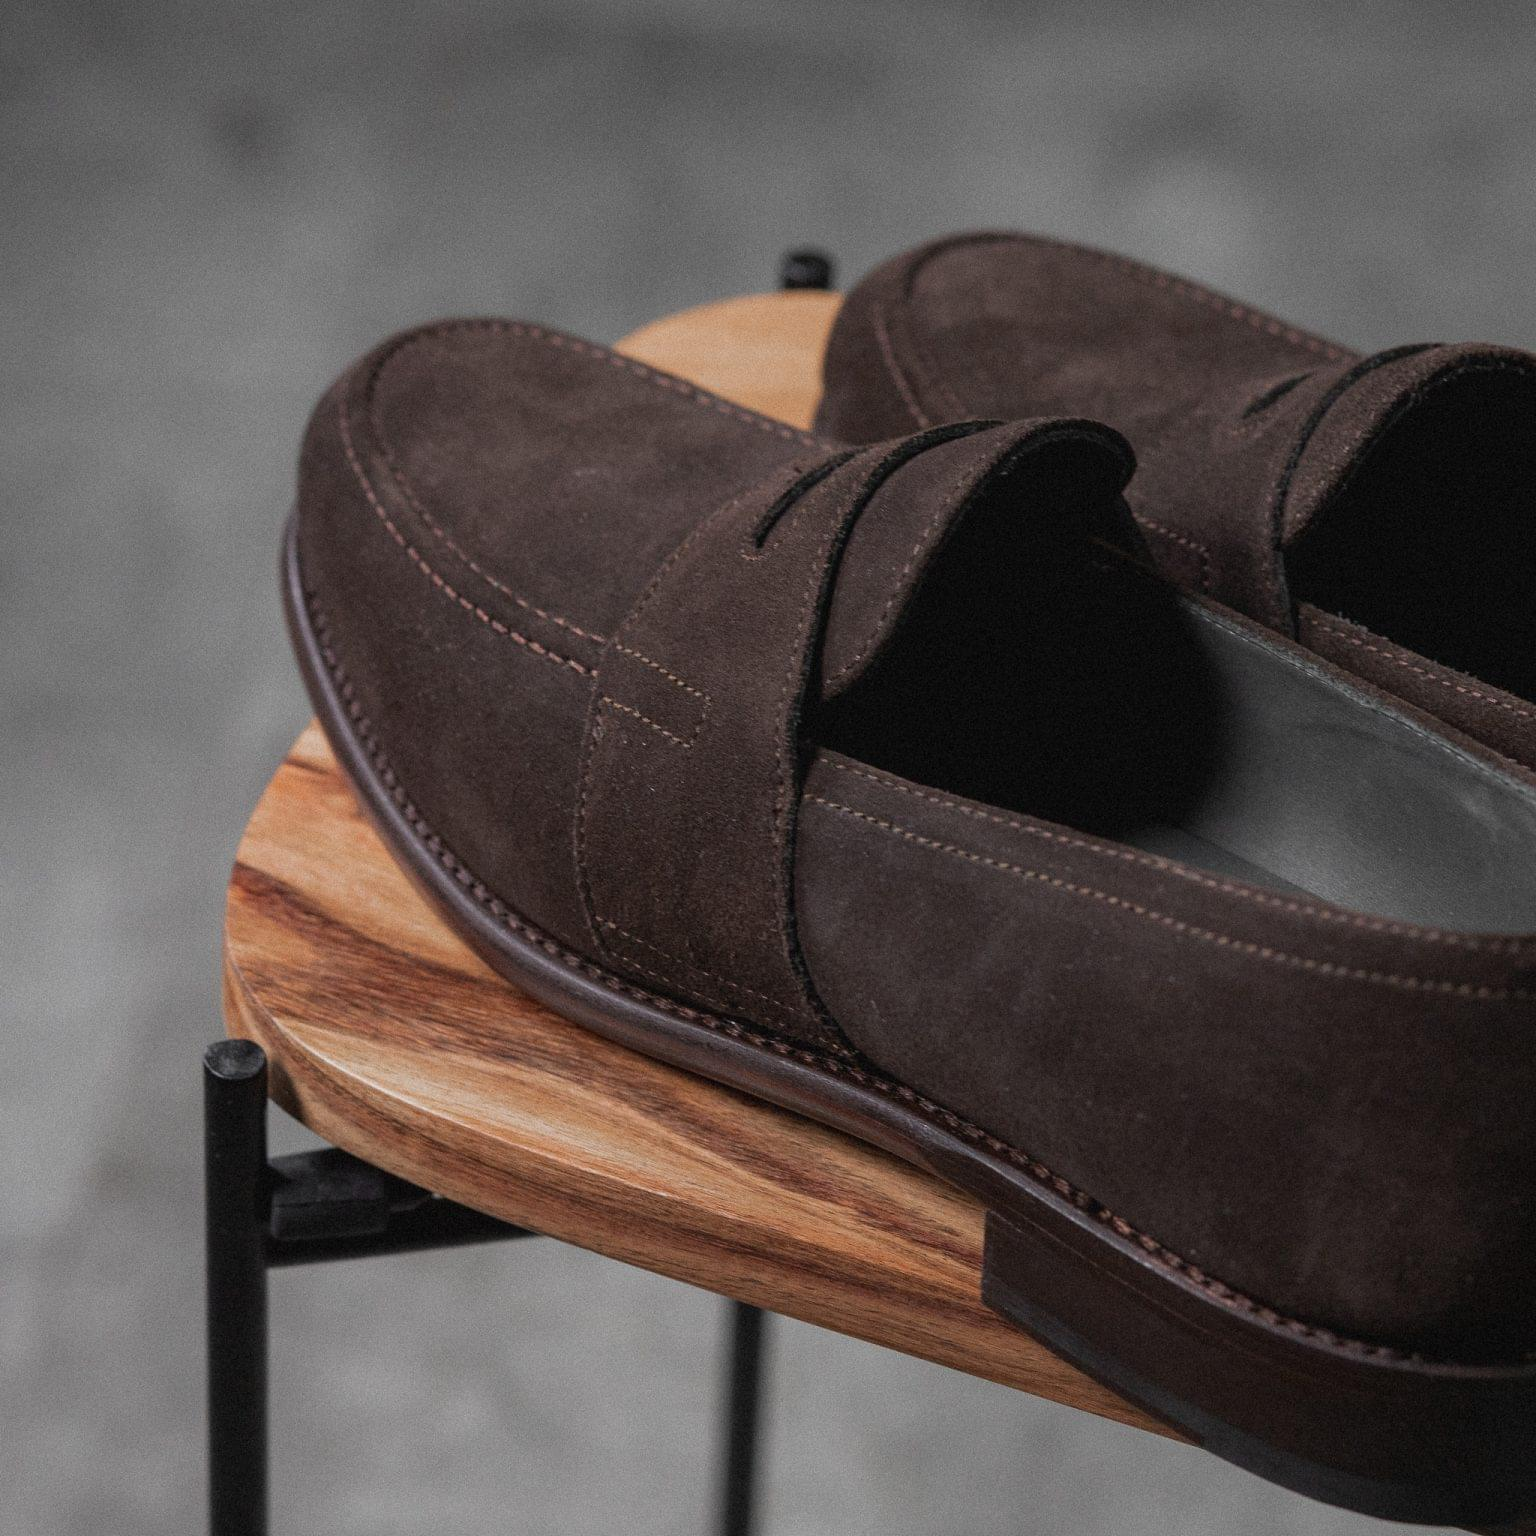 LOAFERS-MOCASINES-01-02-The-Seëlk-4